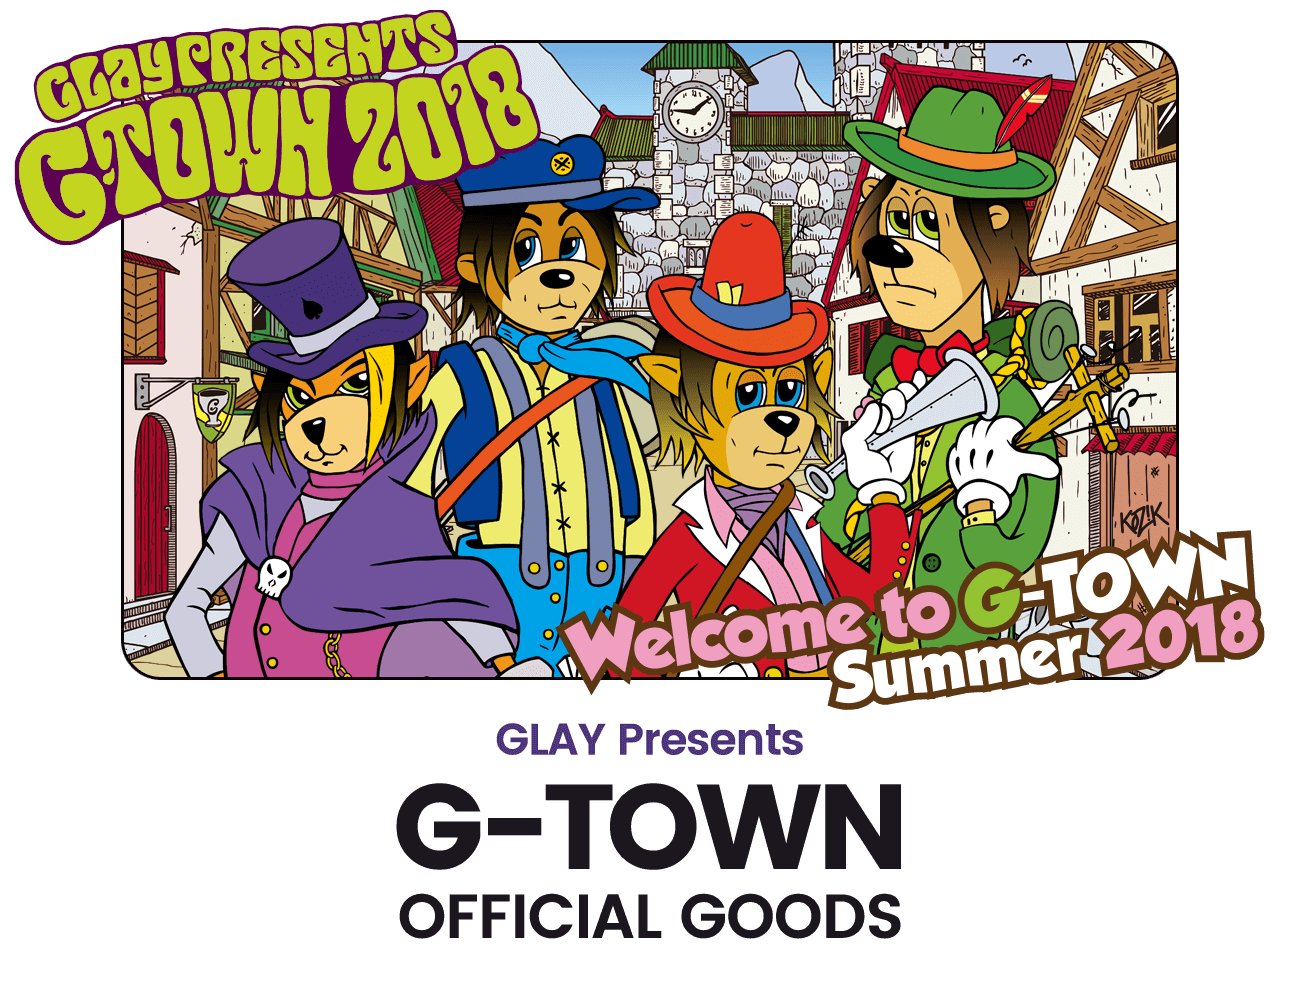 GLAY presents G-TOWN OFFICIAL GOODS